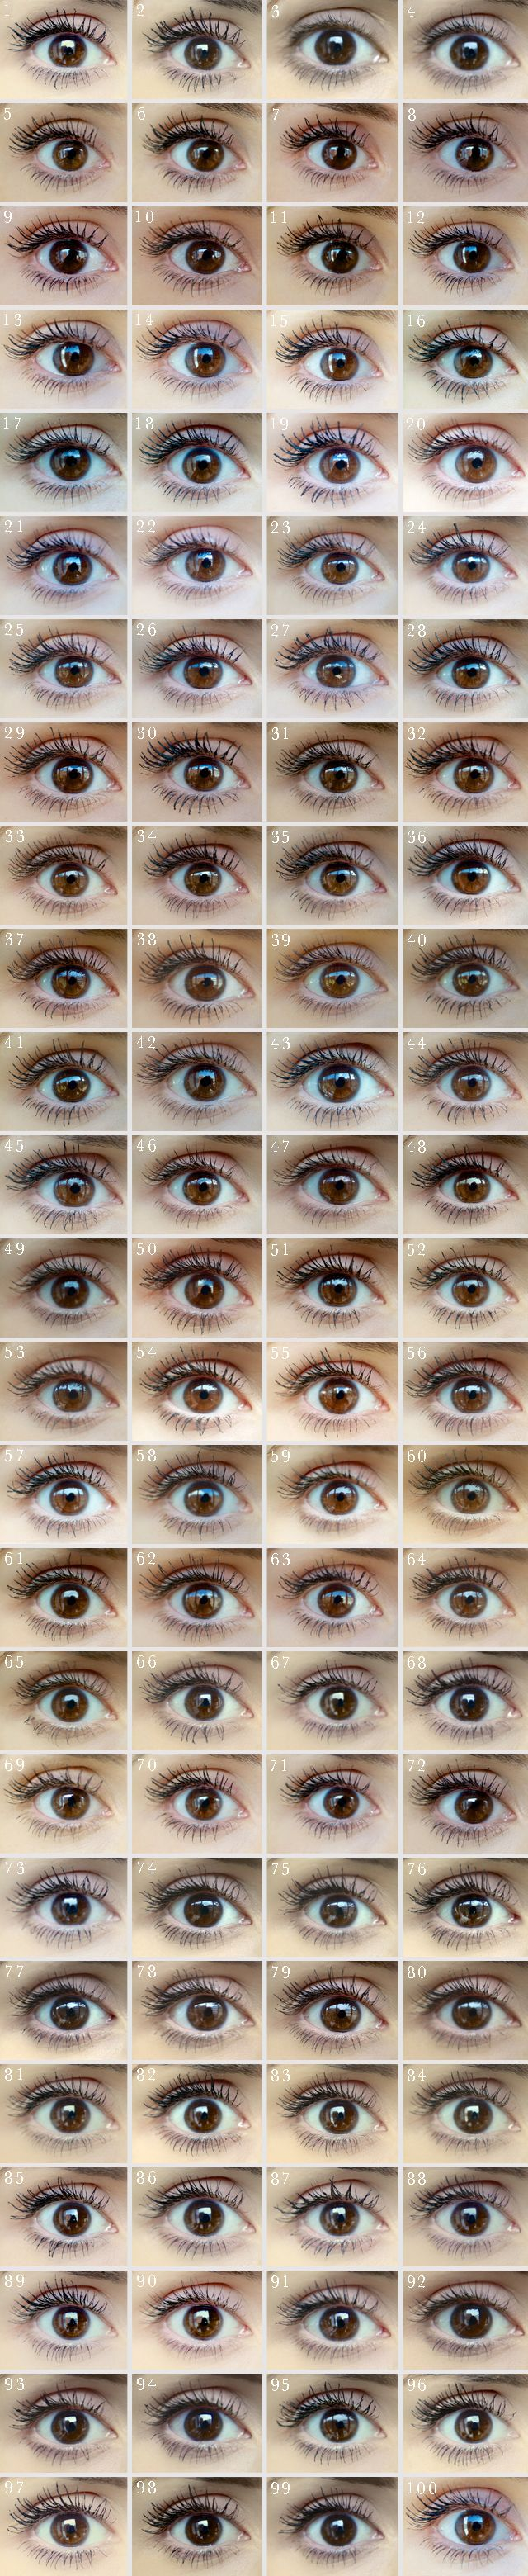 The dress eye test - 100 Mascaras Tested On One Eye For Comparison